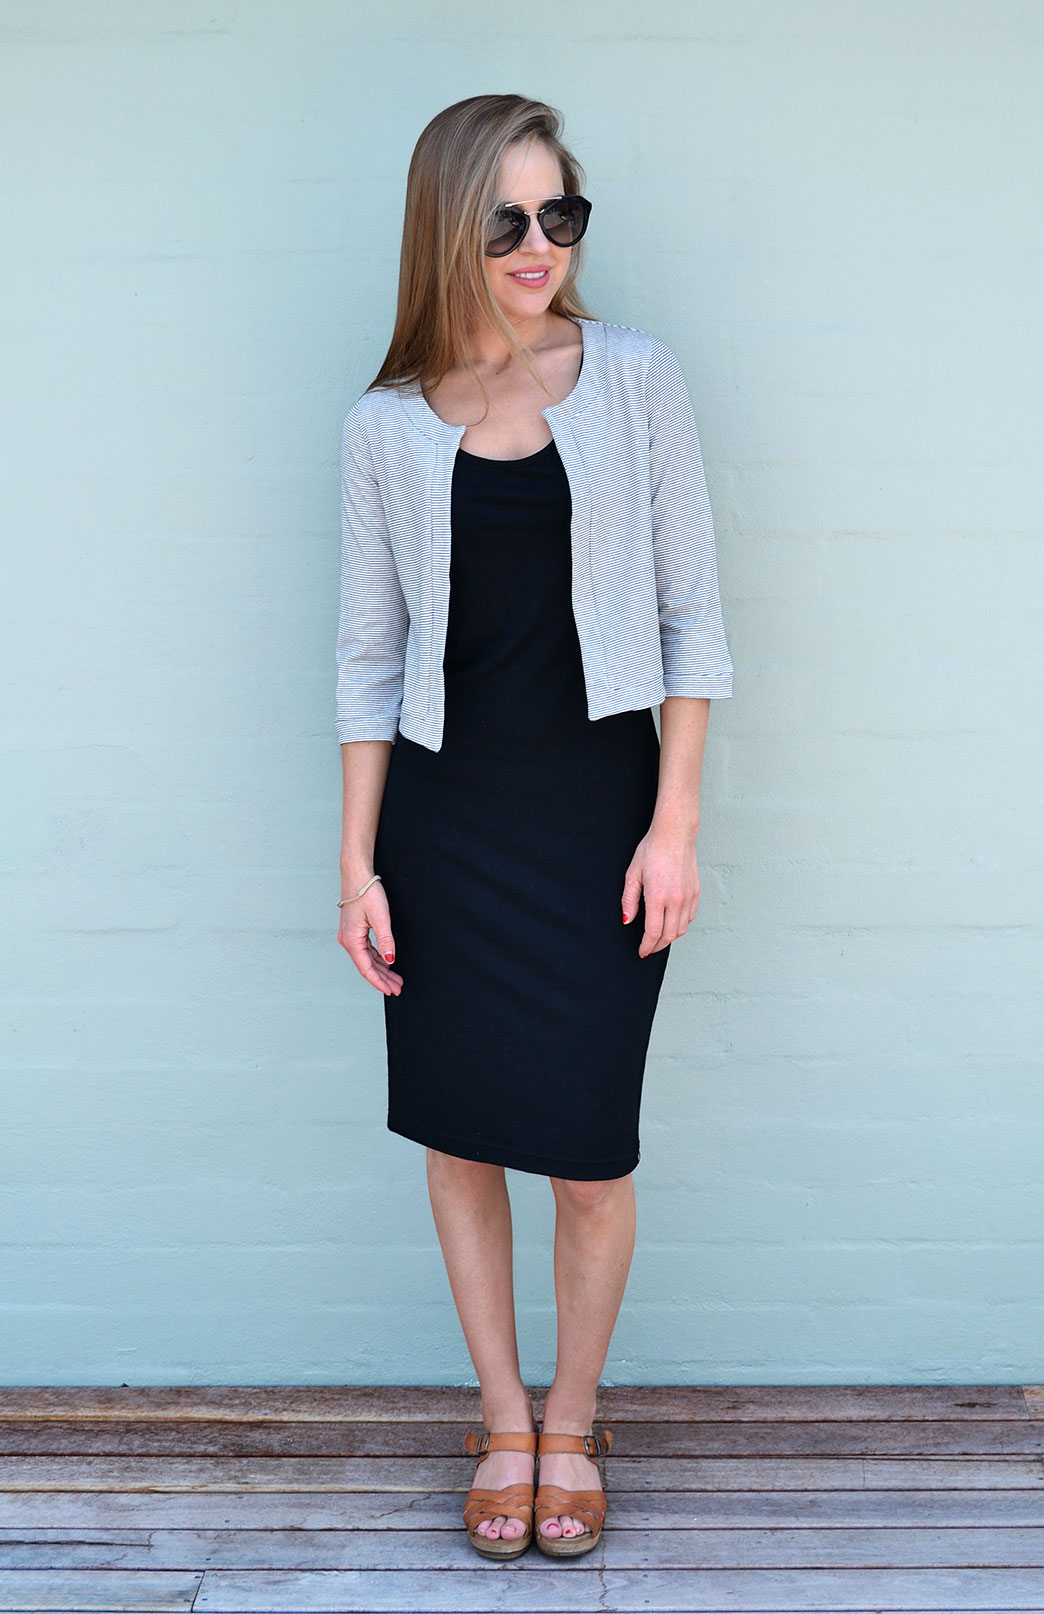 Coco Jacket - Organic Cotton - Women's Organic Cottton Black and White Cropped Bolero Jacket - Smitten Merino Tasmania Australia